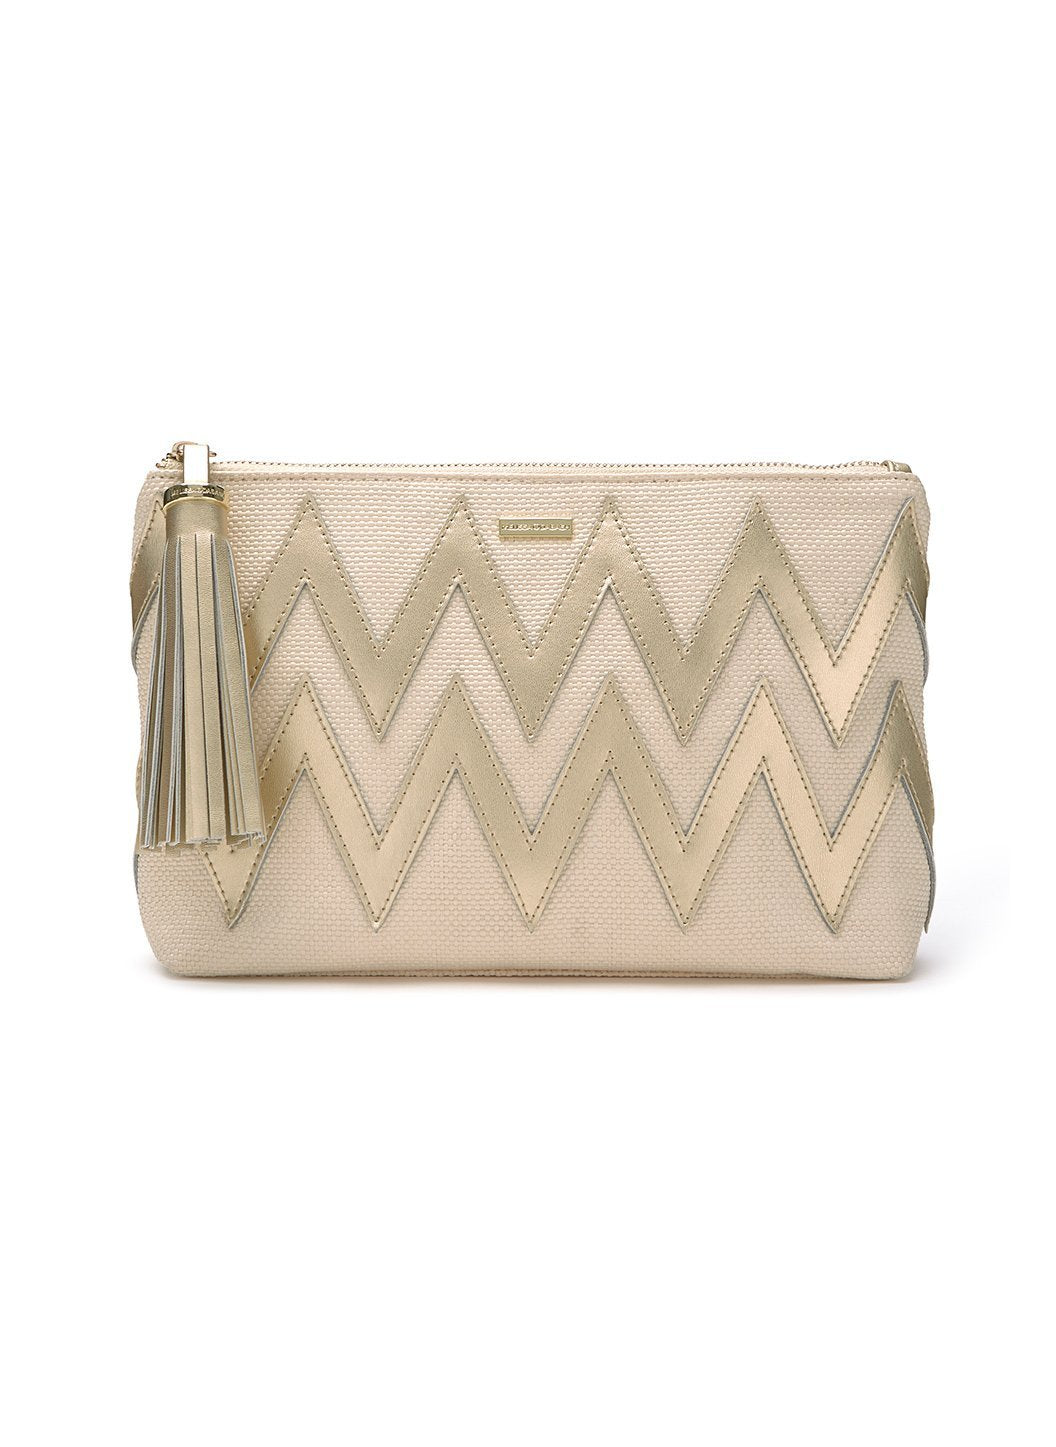 crete zigzag clutch bag natural gold 2019